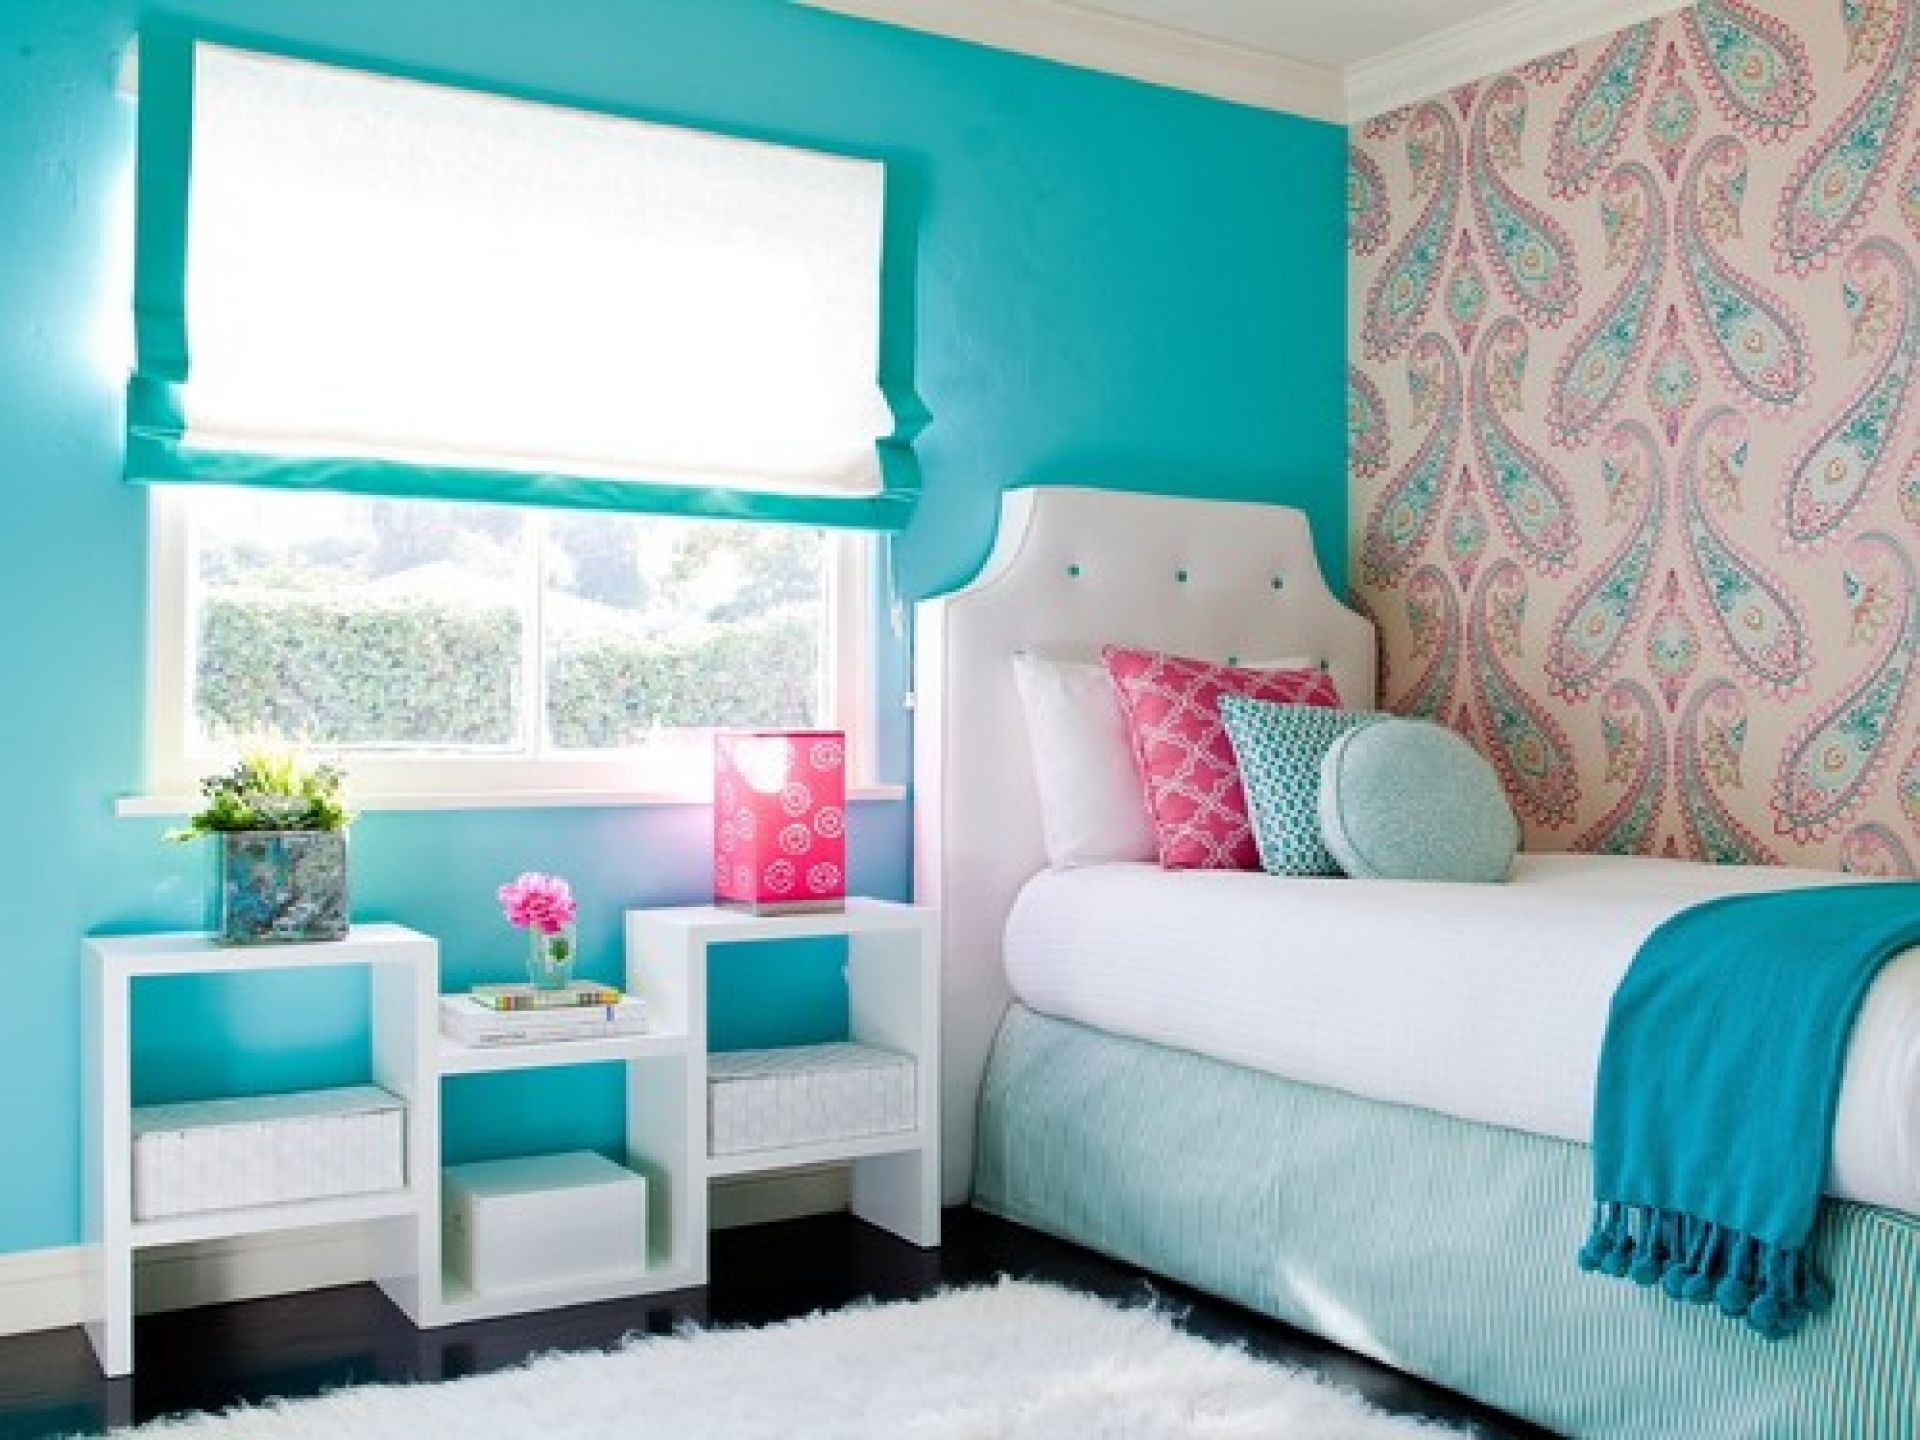 Simple design comfy room colors teenage girl bedroom wall Bedroom ideas for teens